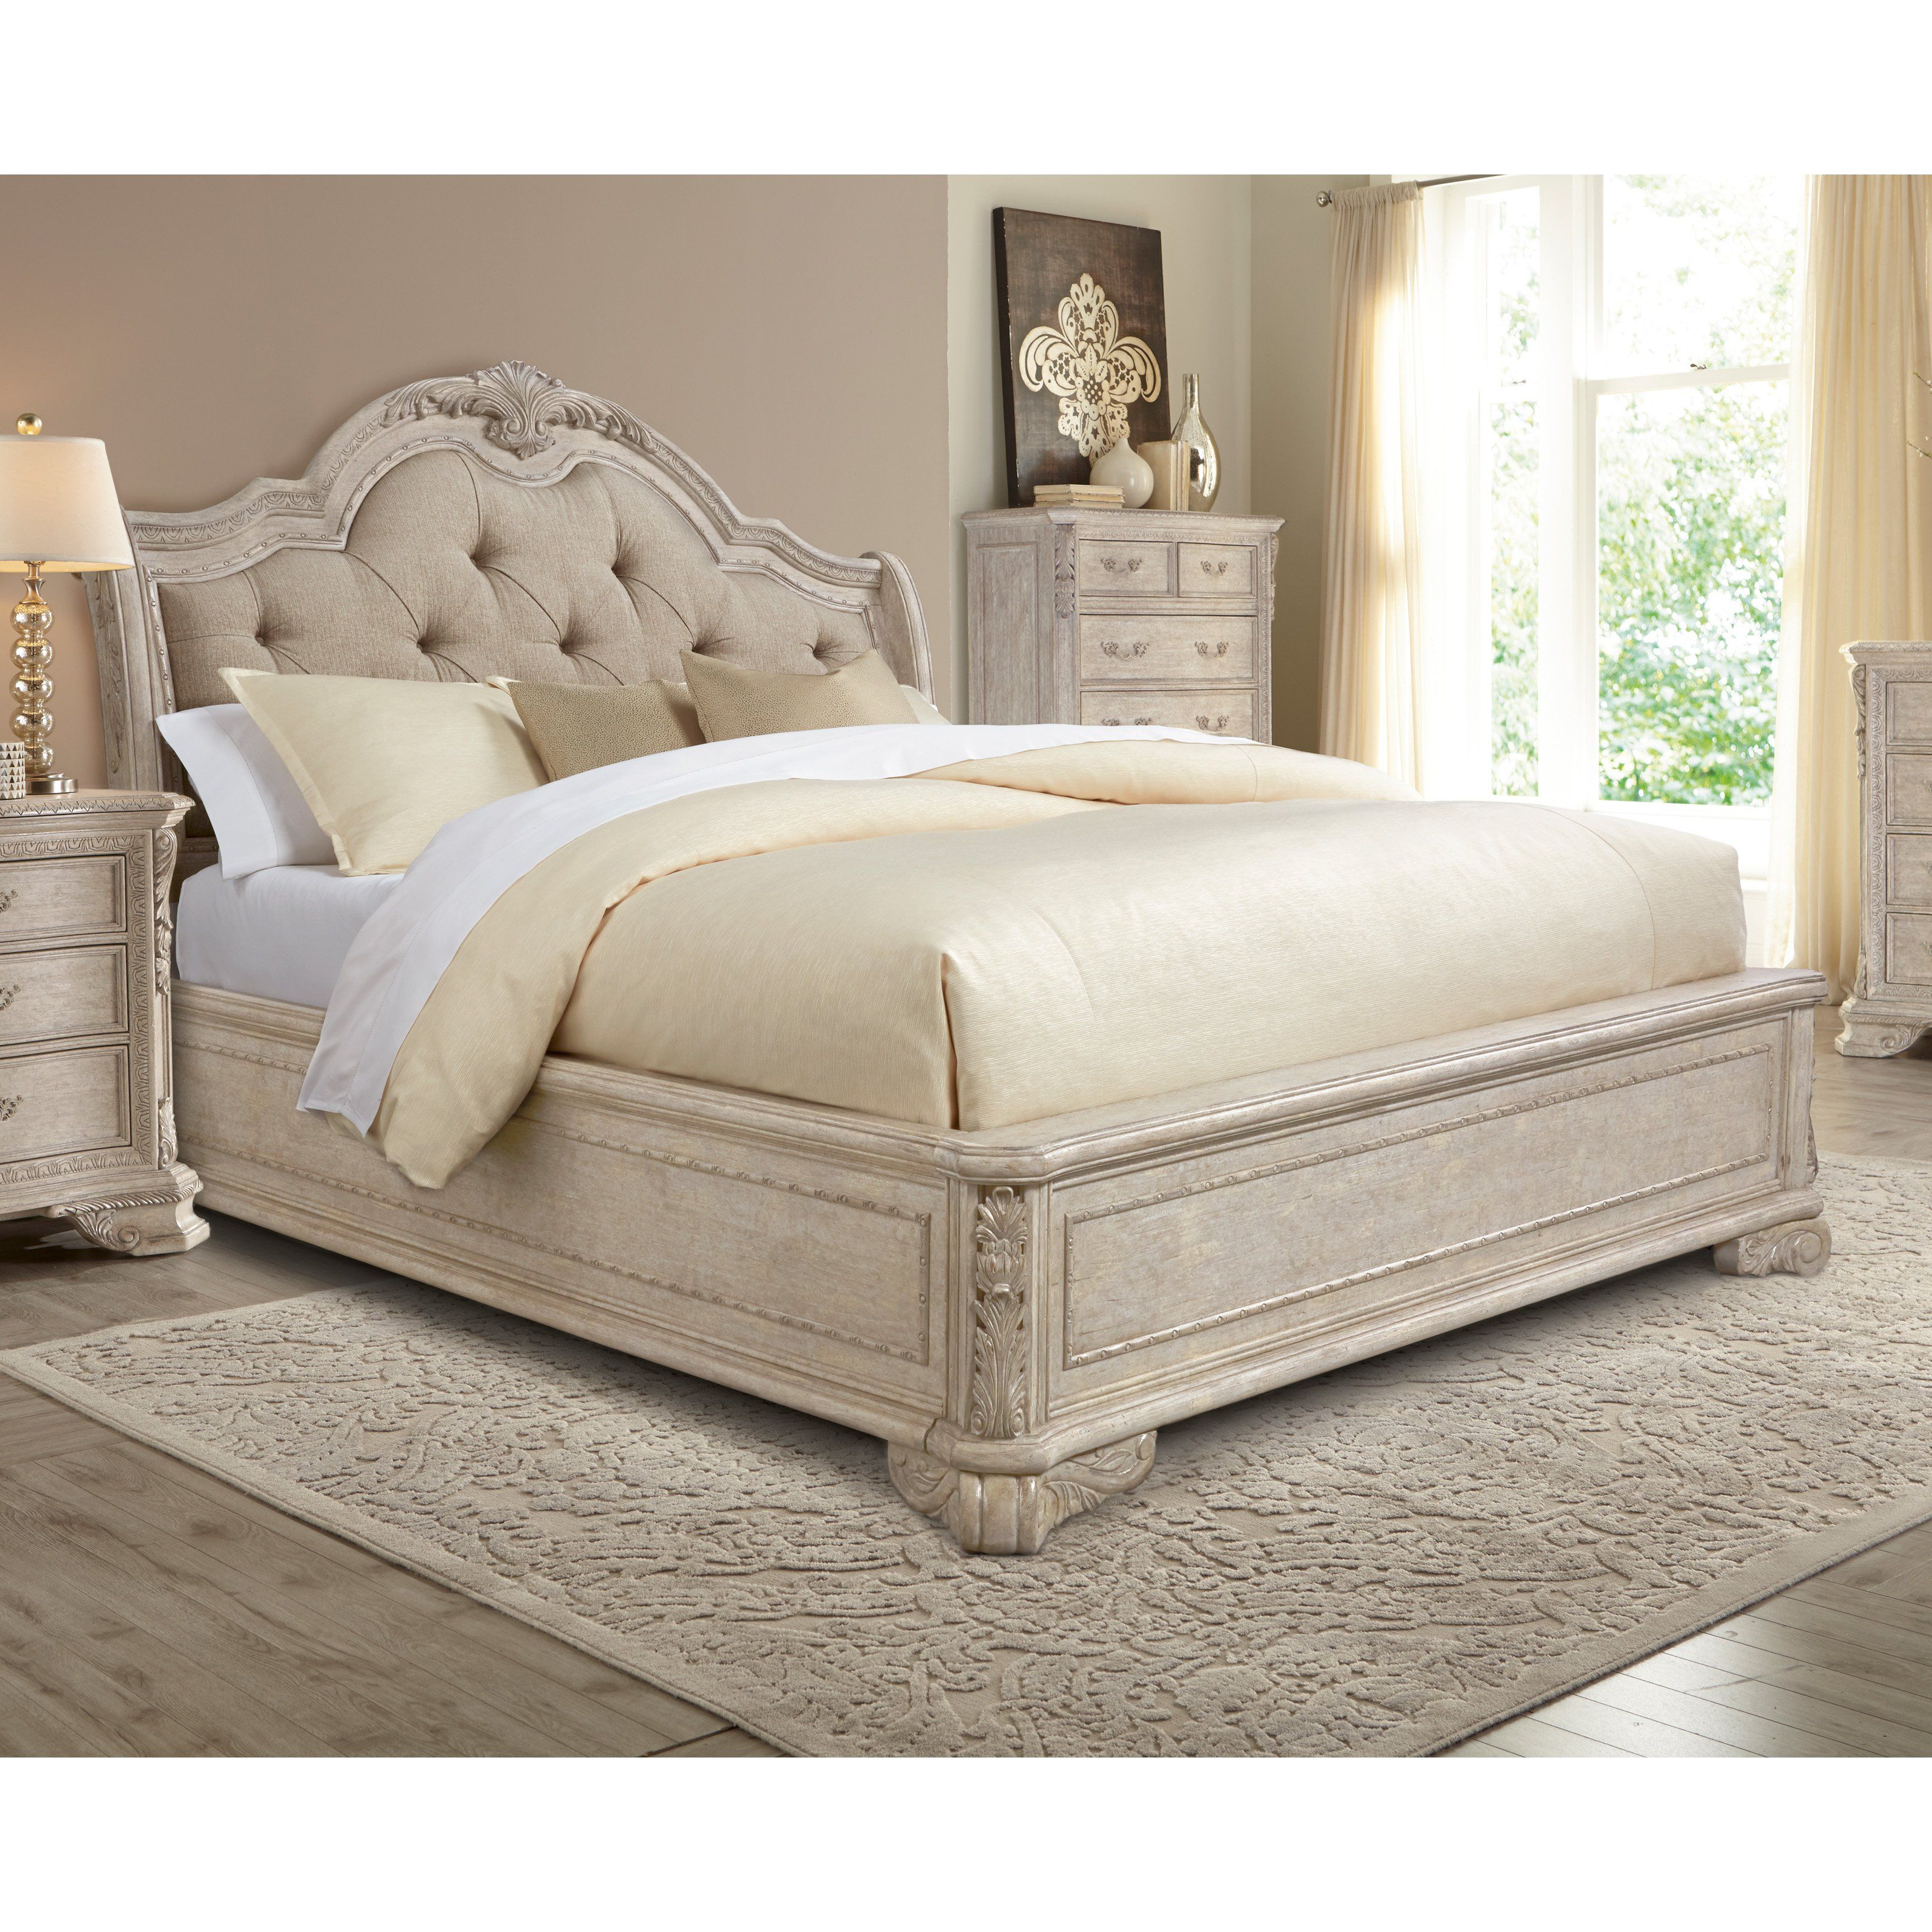 full linen uncategorized sleigh bed of tufted for headboard king size footboard fantastic with upholstered and queen